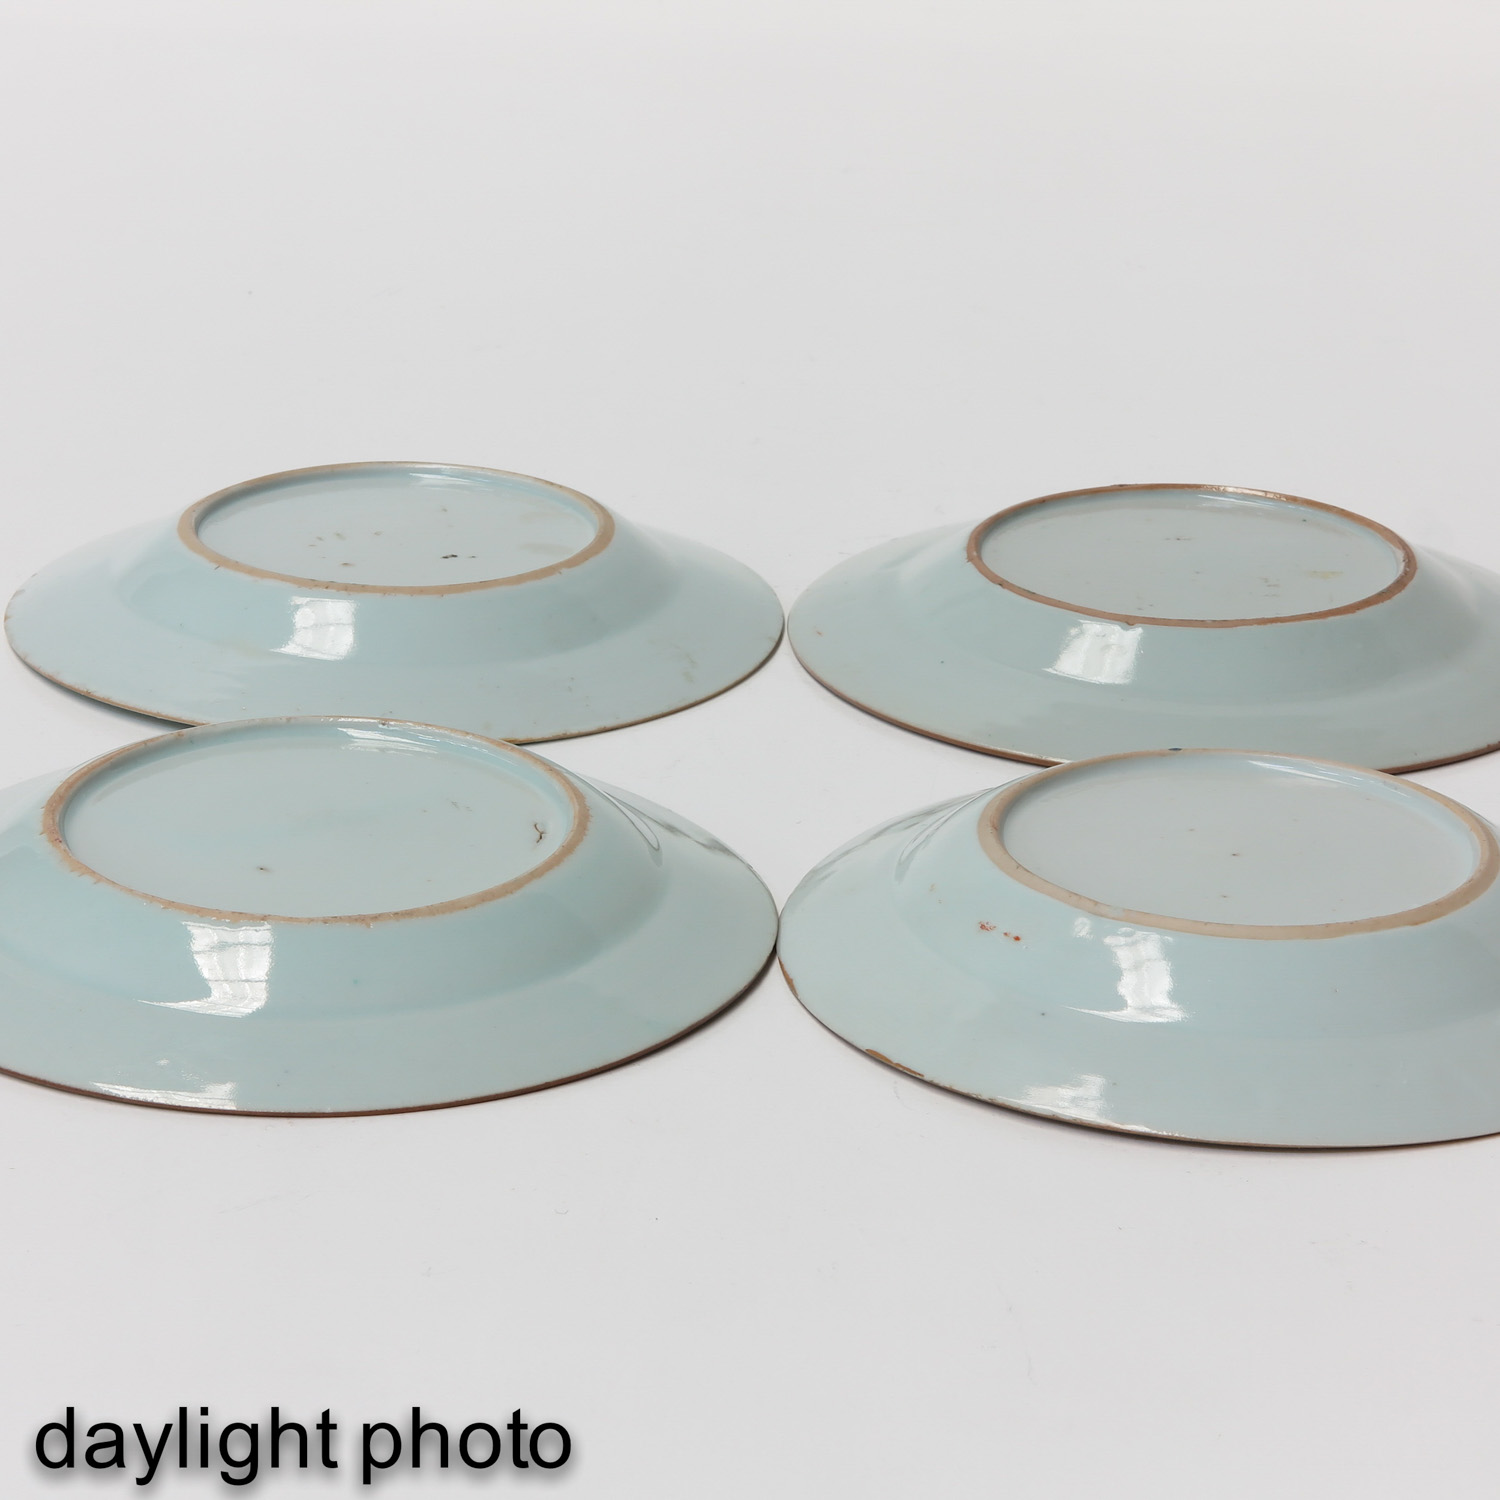 A Series of 4 Famille Rose Plates - Image 8 of 10